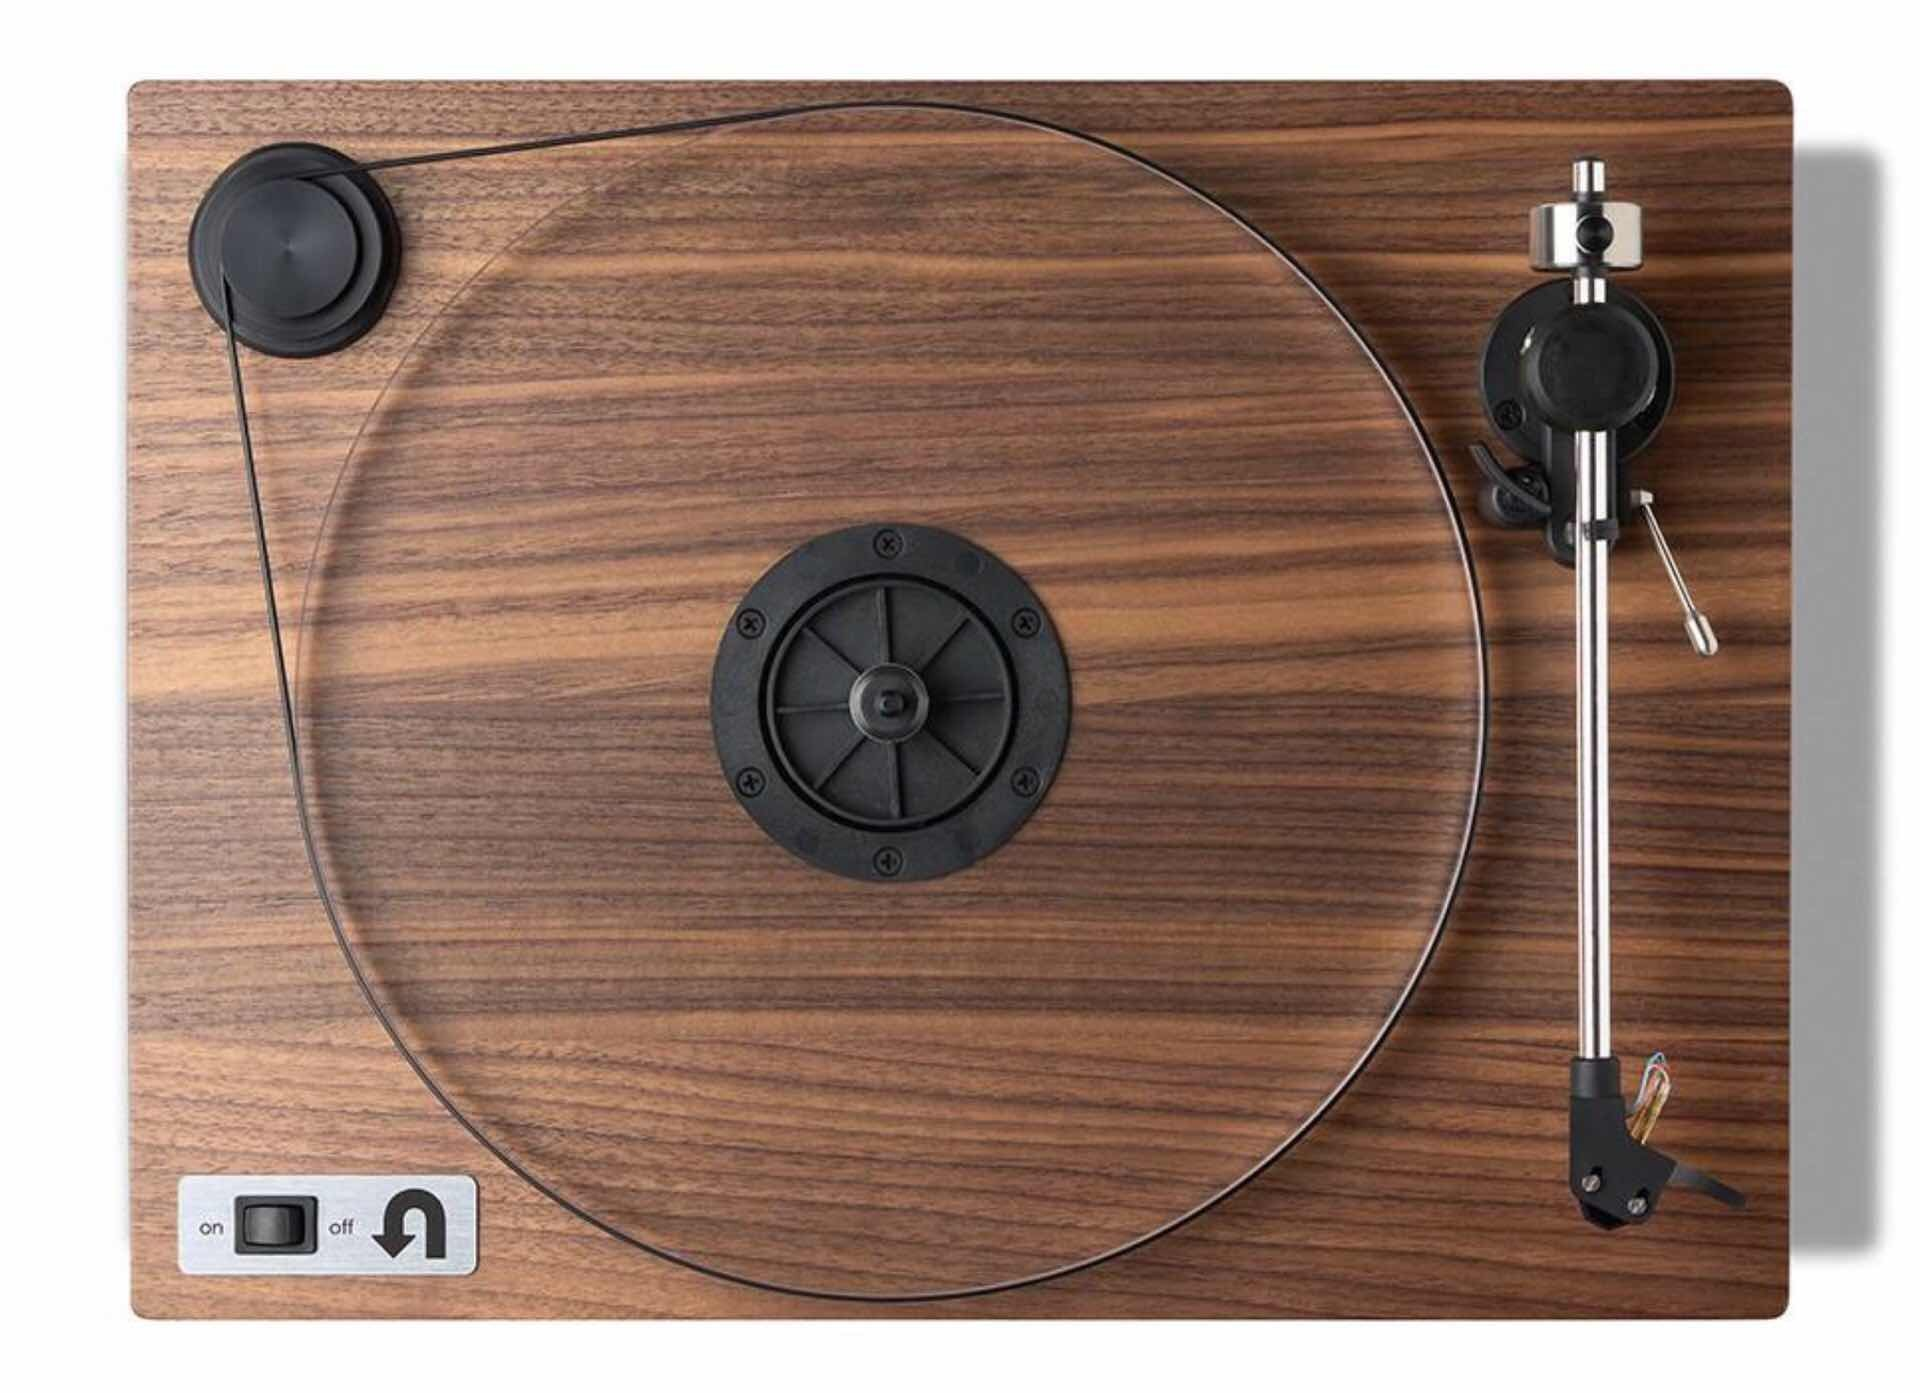 U-Turn's Orbit Special hardwood turntable. ($549 with preamp, $479 without)